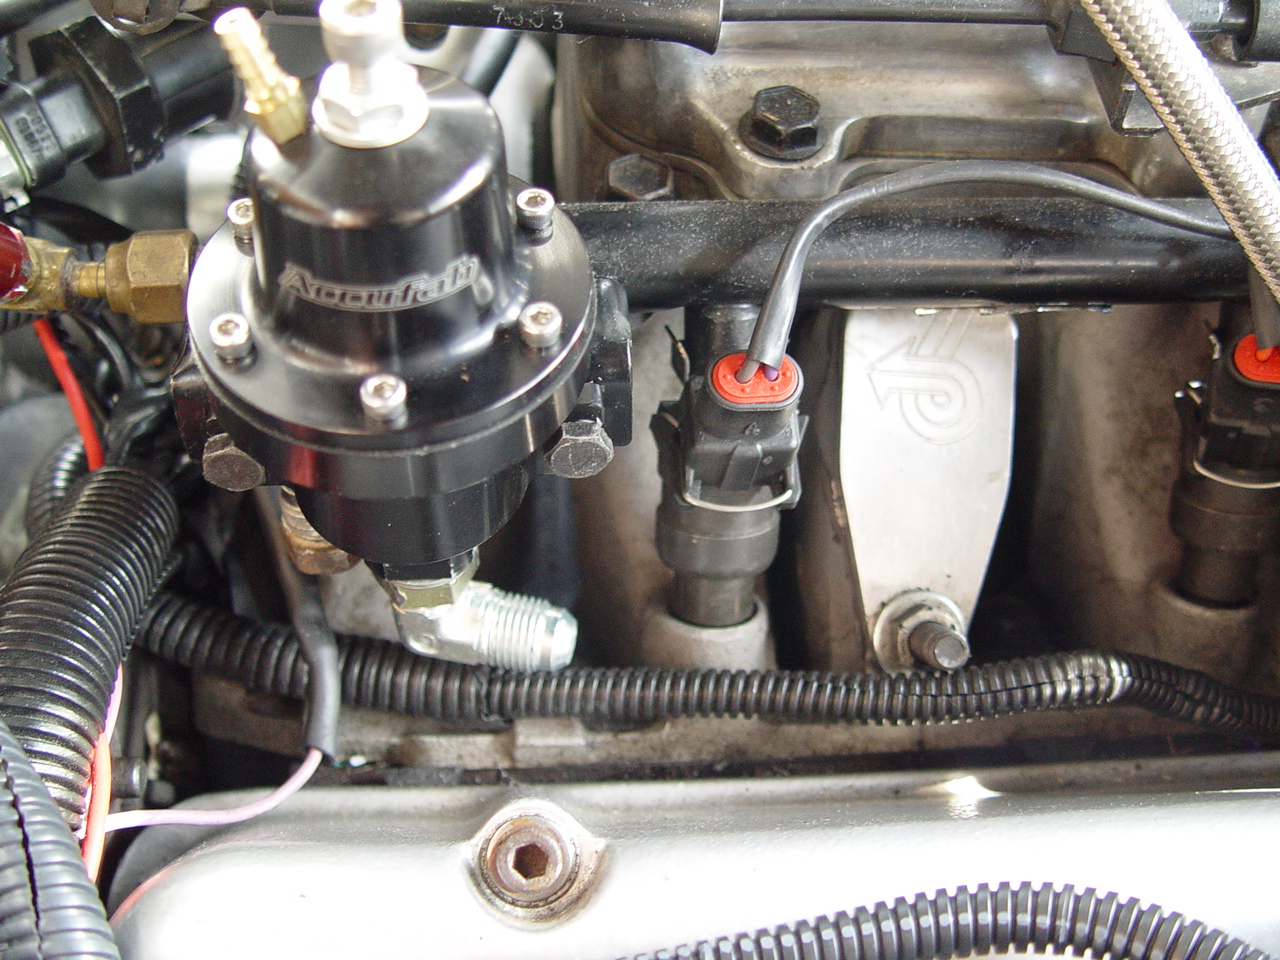 Install a New #6 AN Braided Return Line on Buick Grand National